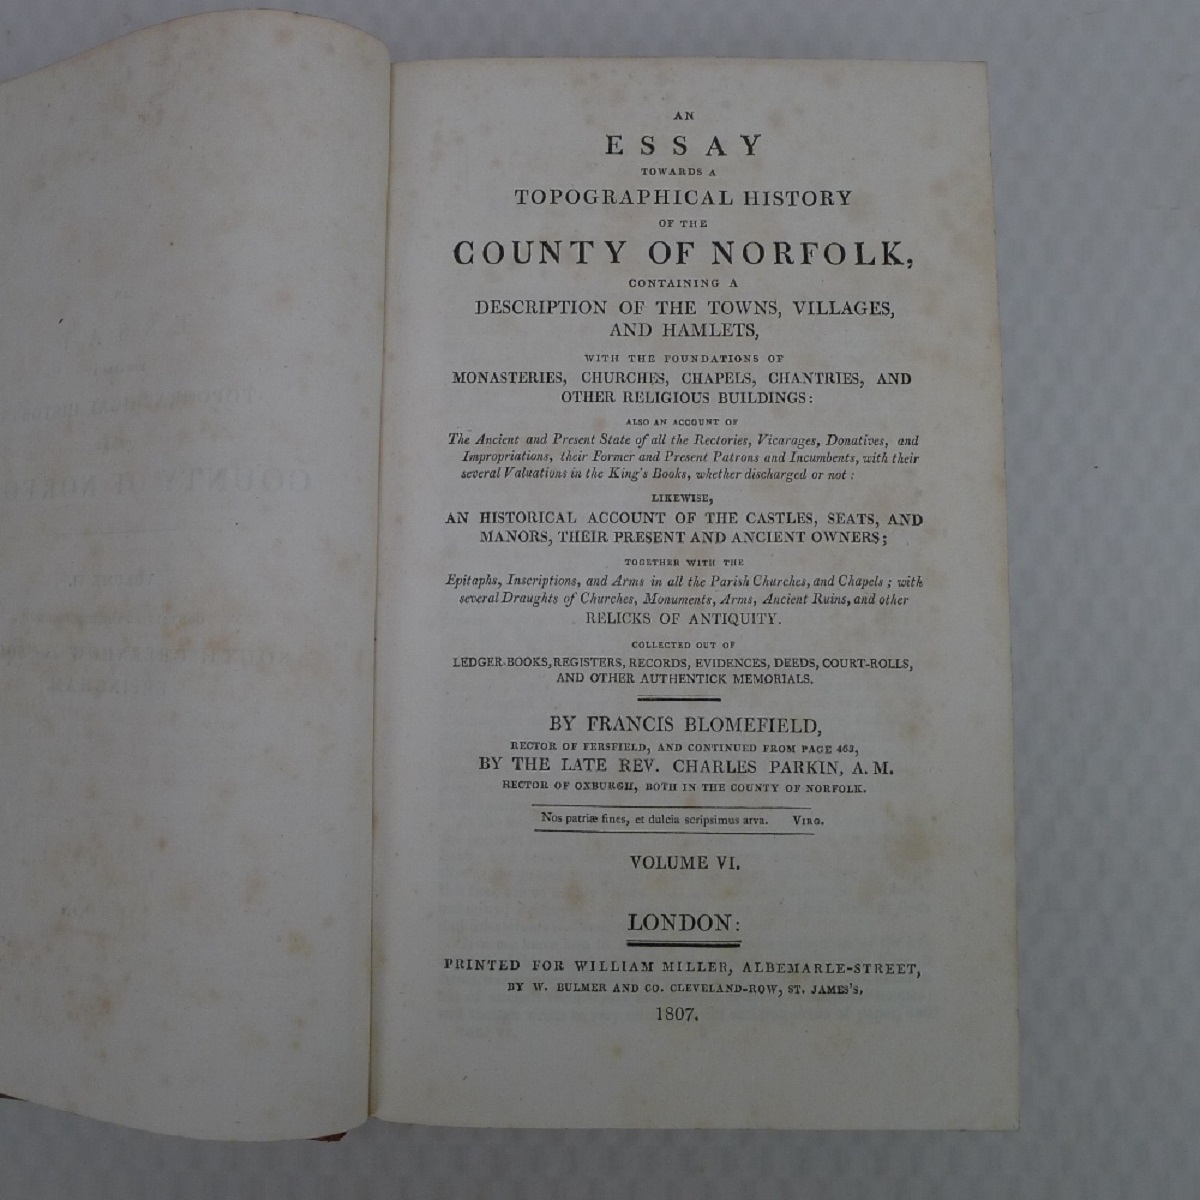 All 11 volumes of An Essay Towards the Topographical History of the County of Norfolk by Thomas - Image 15 of 23